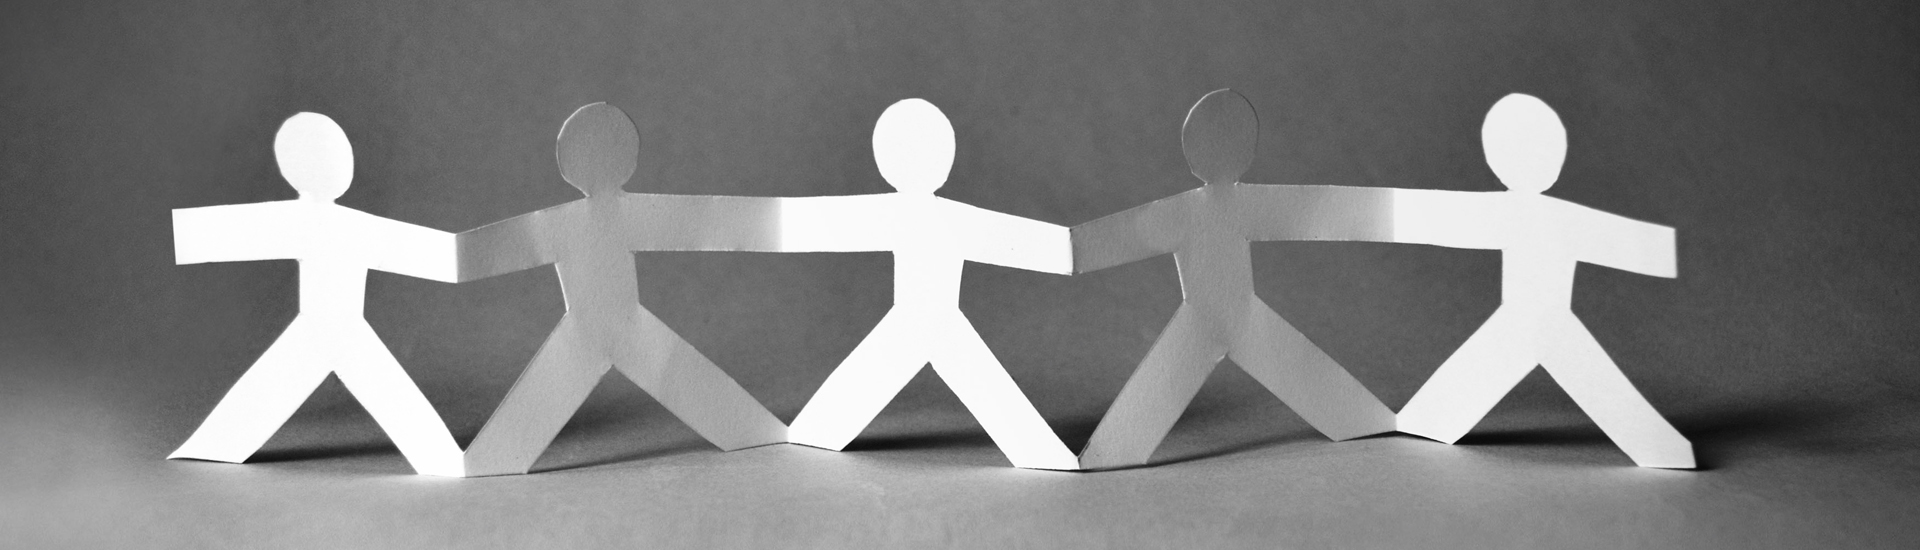 paper_people_hires_bw_1920x550